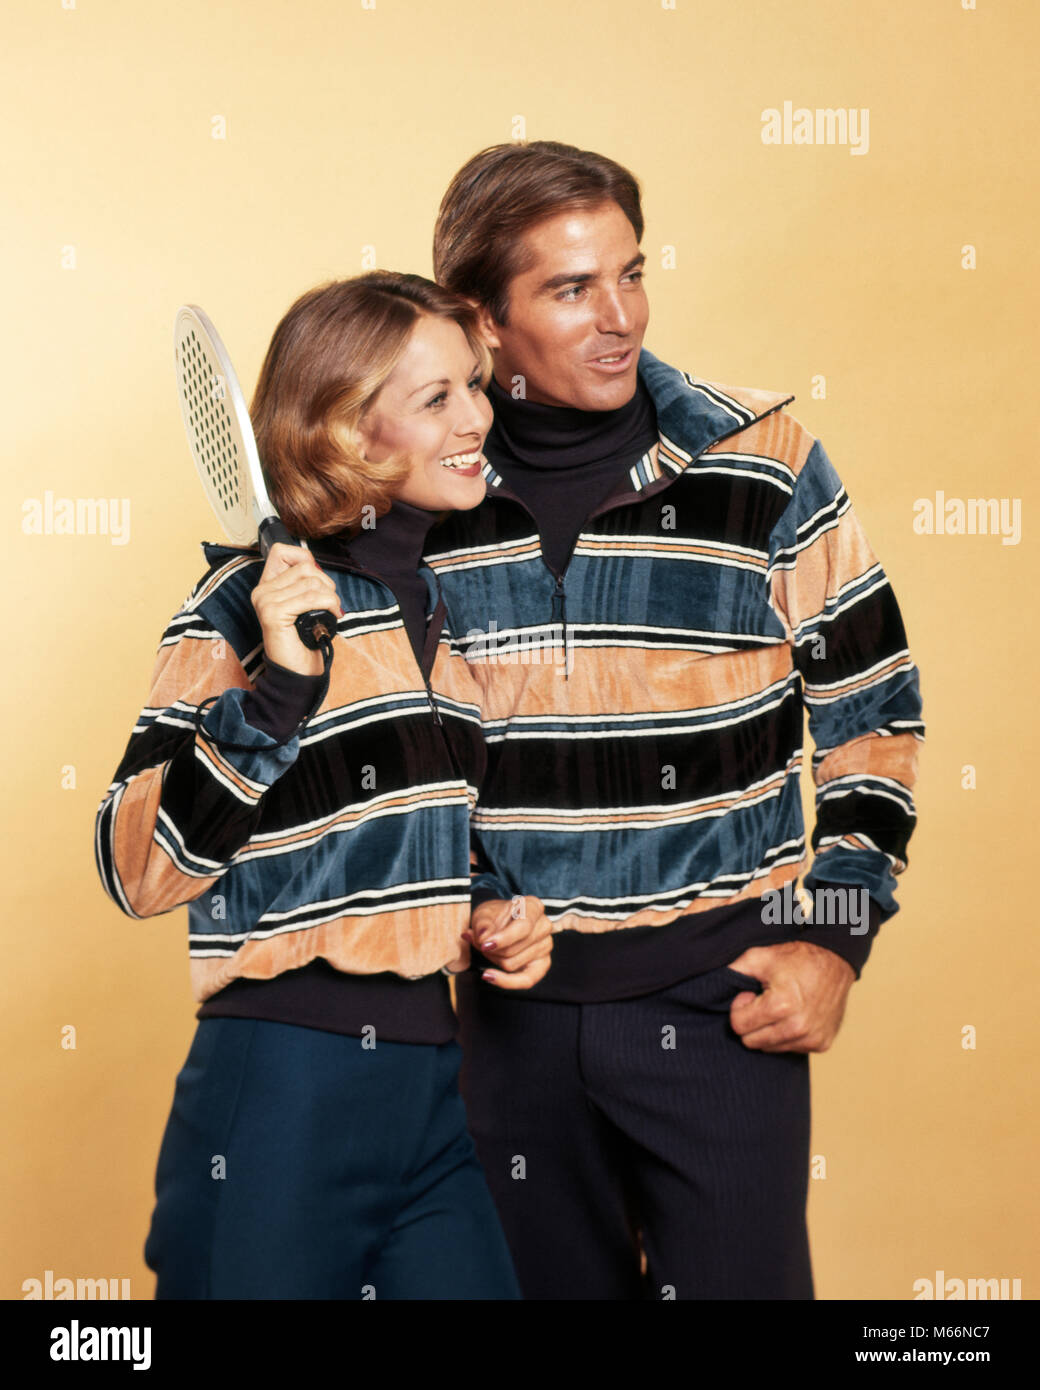 1970s SMILING COUPLE MAN WOMAN HOLDING SQUASH RACKET WEARING MATCHING STRIPED VELOUR PULLOVER SWEATERS FASHION SPORTSWEAR - Stock Image